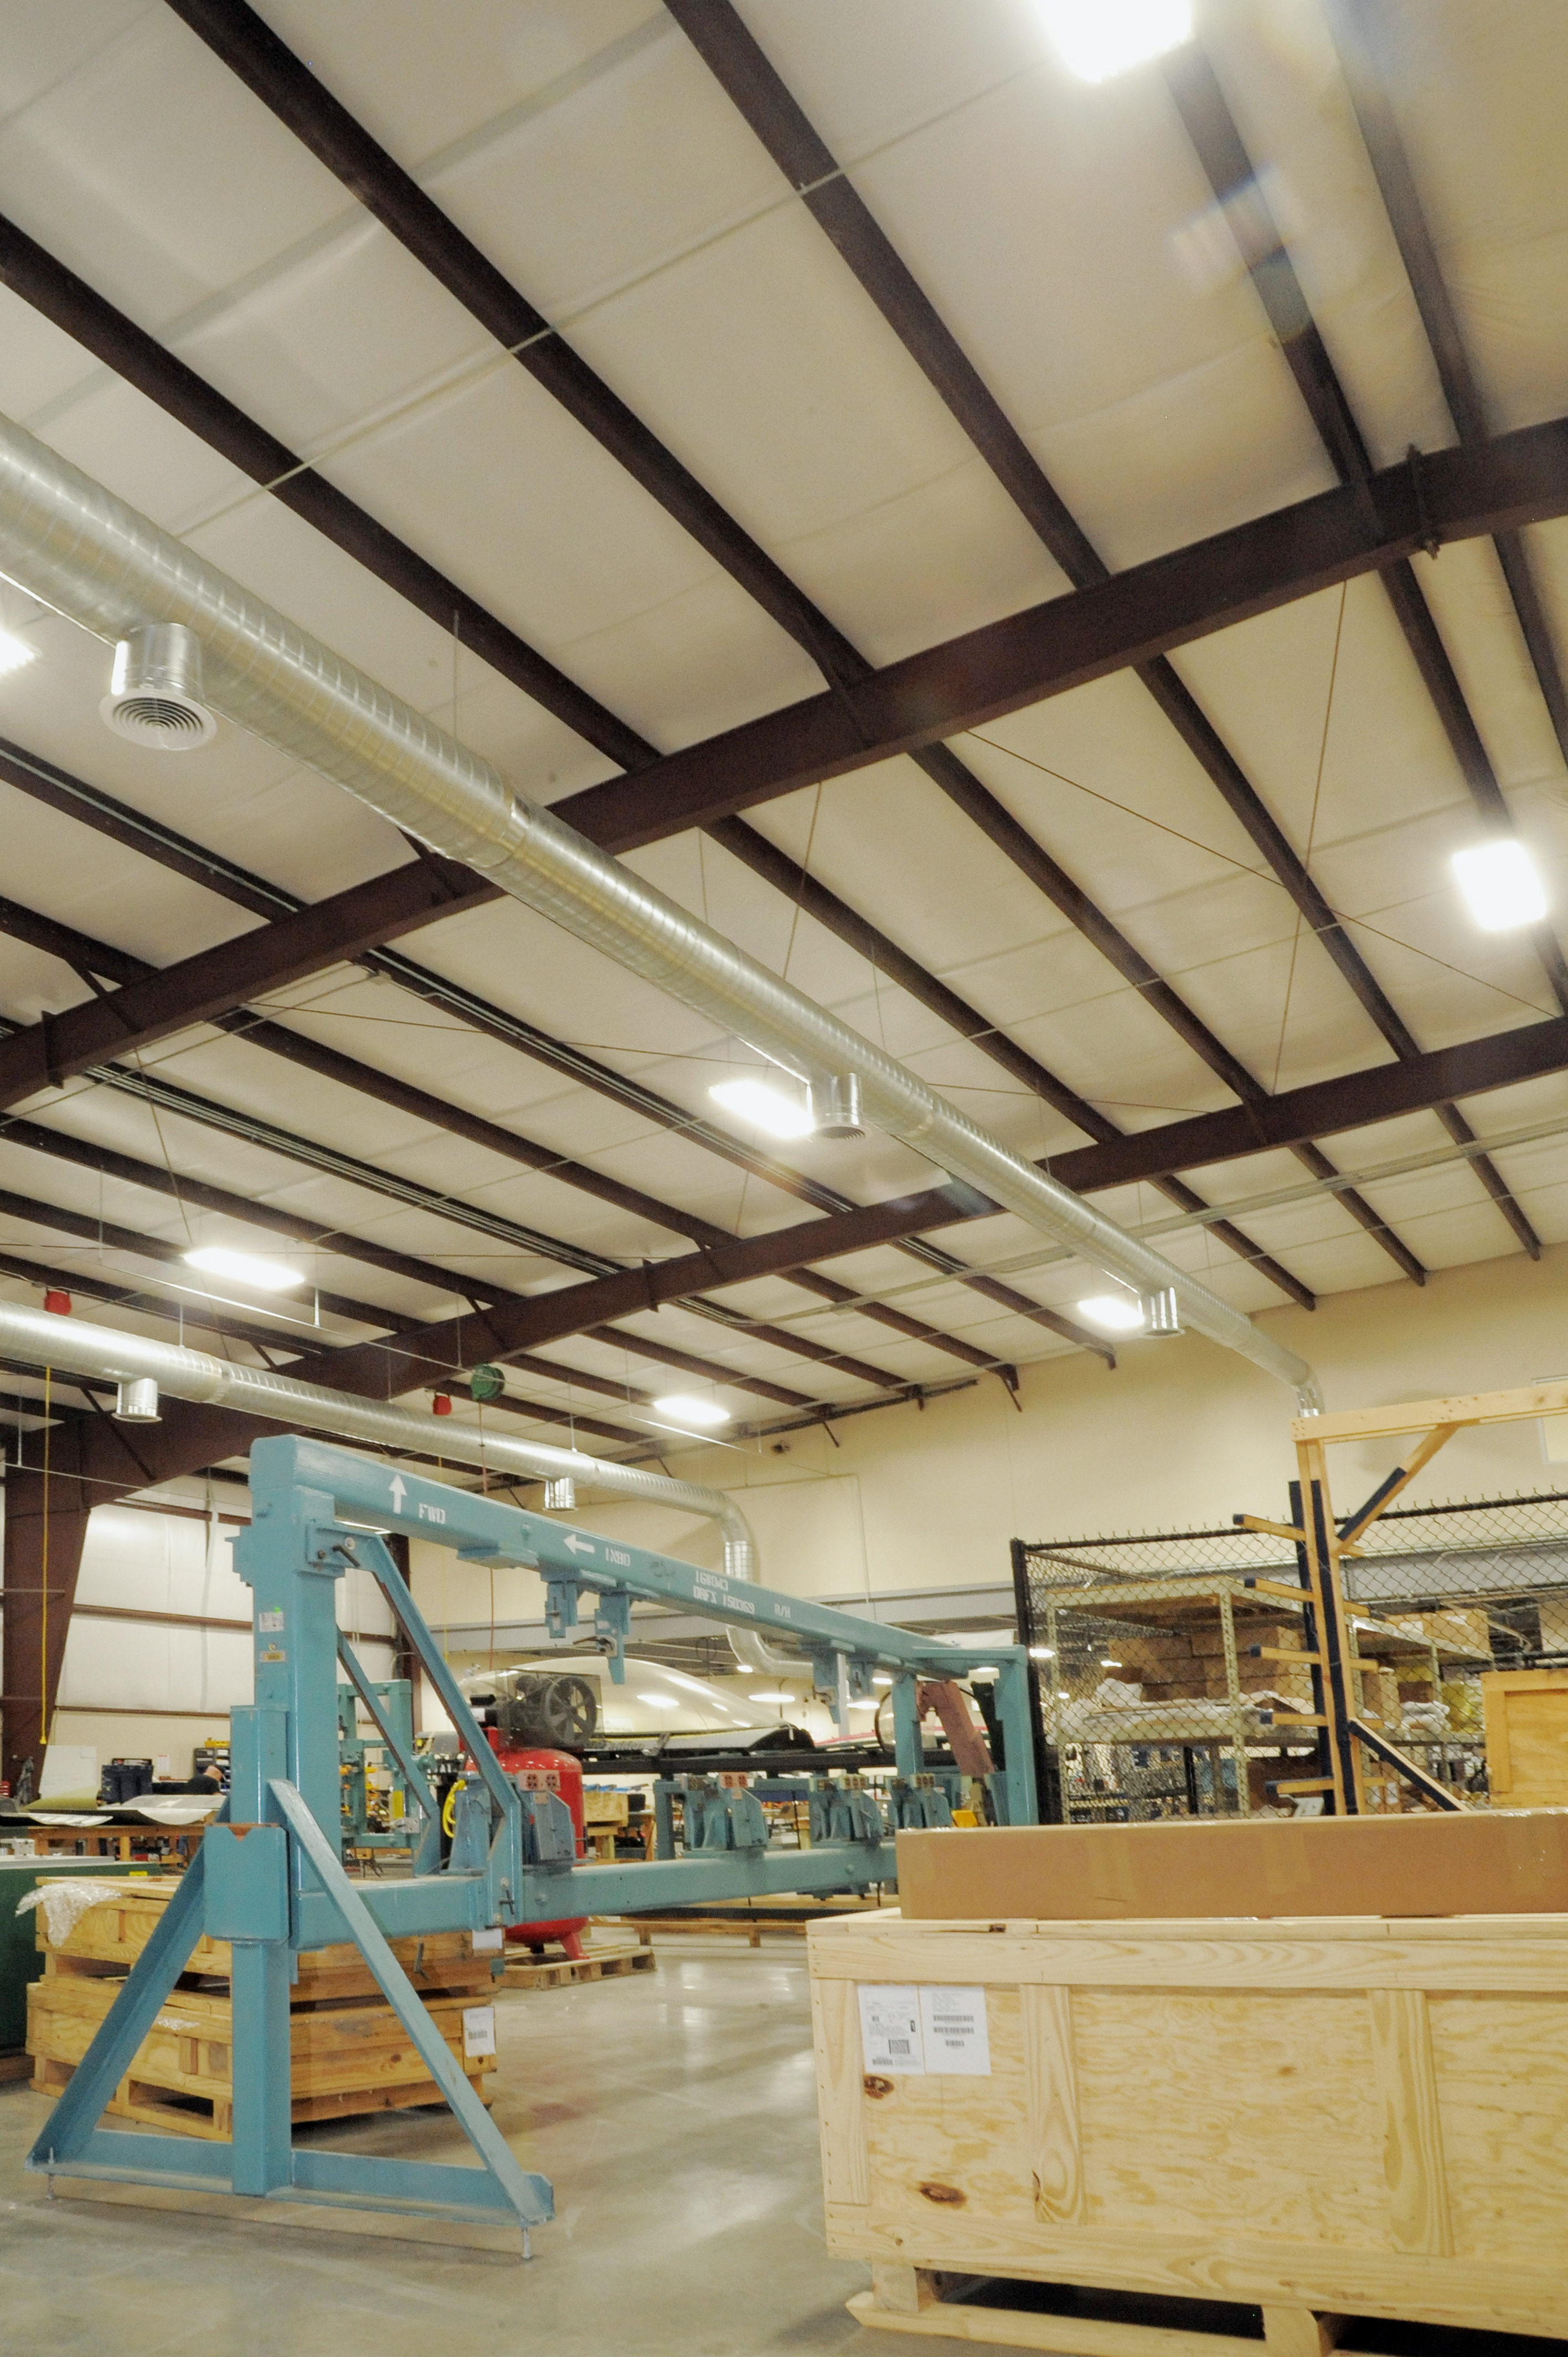 Aerospace Commercial Technology Industrial Construction Interior Frame